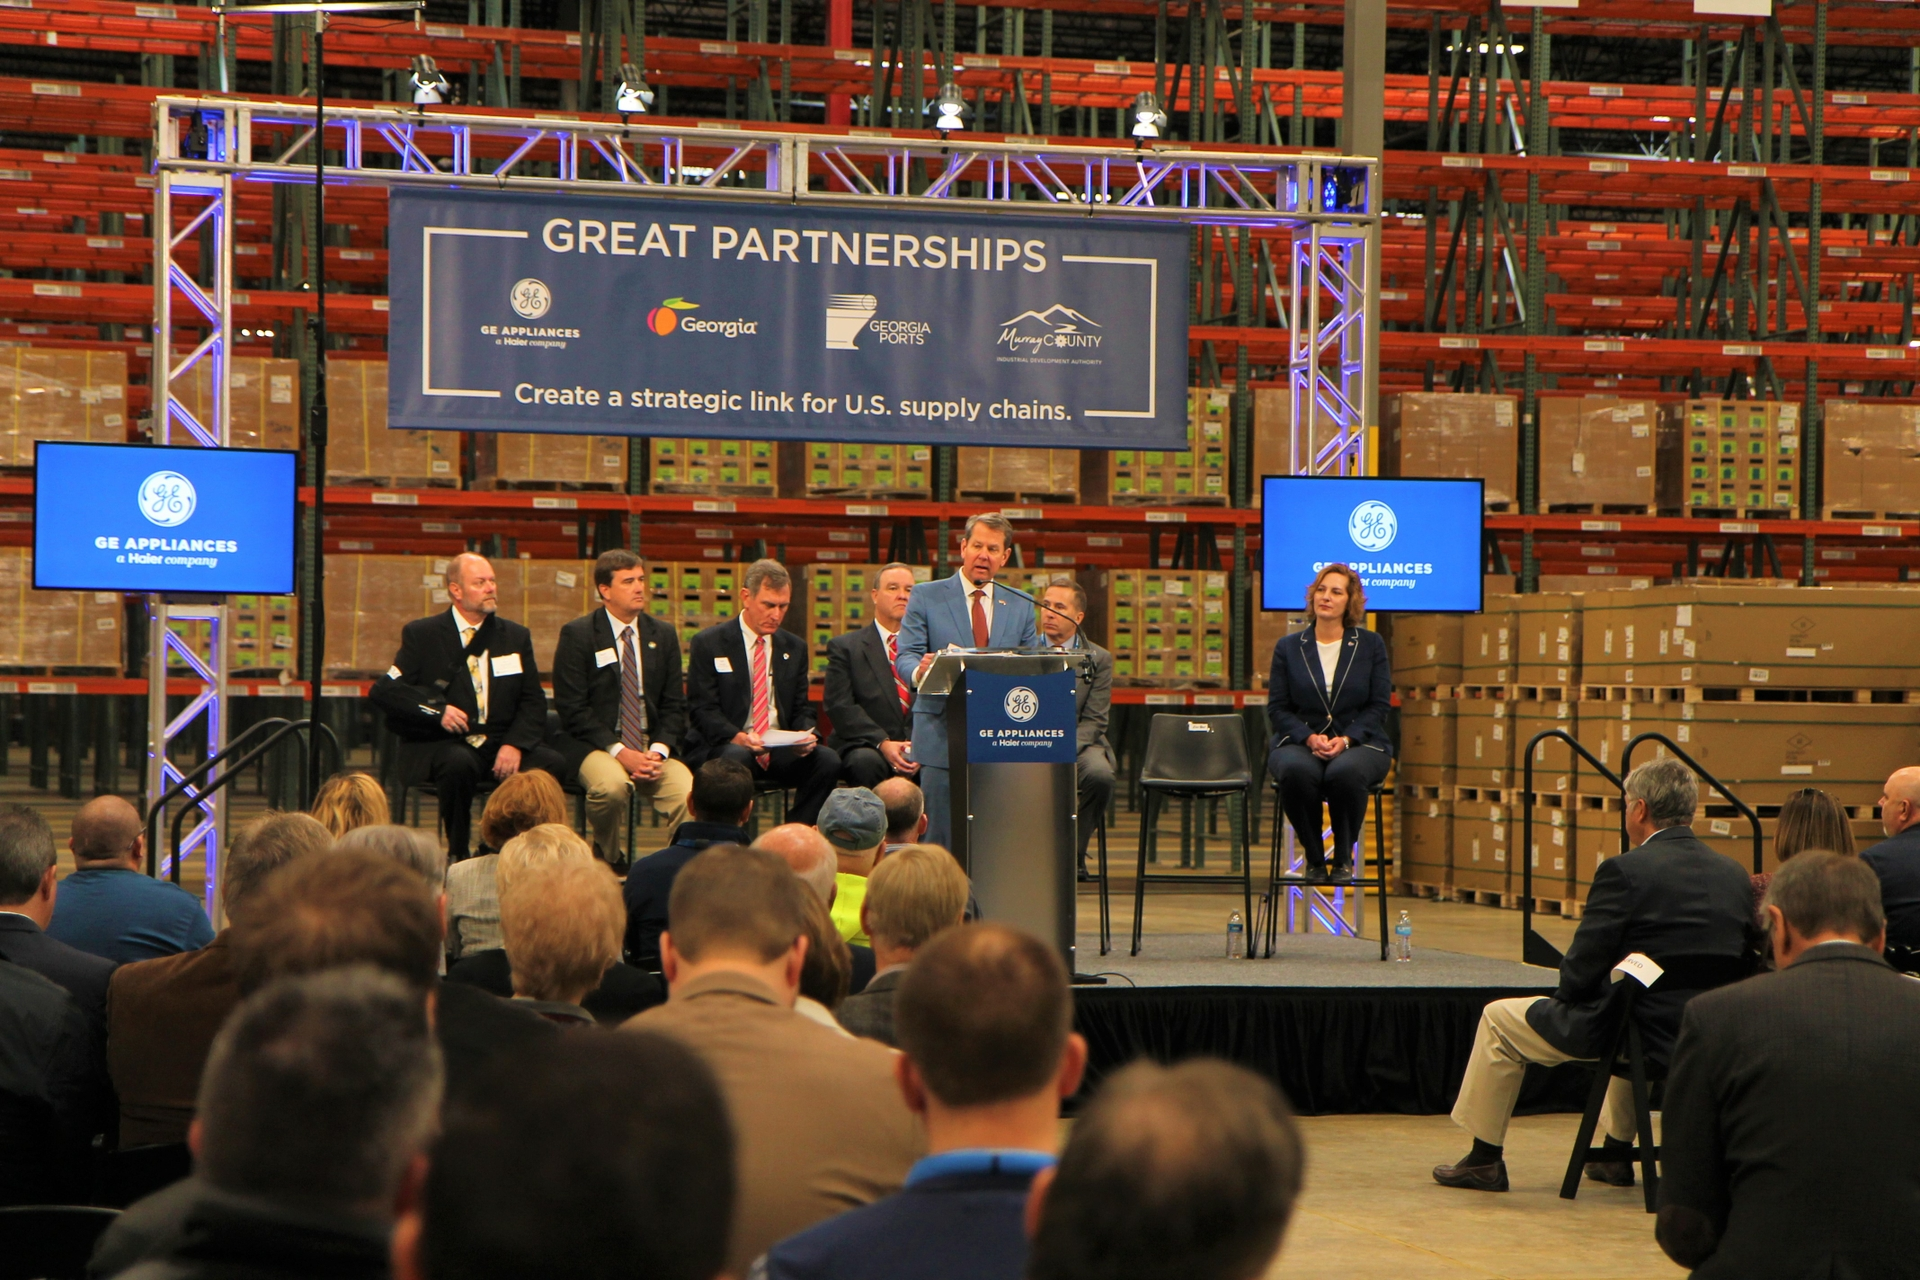 Gov Brian P Kemp celebrates the opening of GEA's Southern Logisctics Center